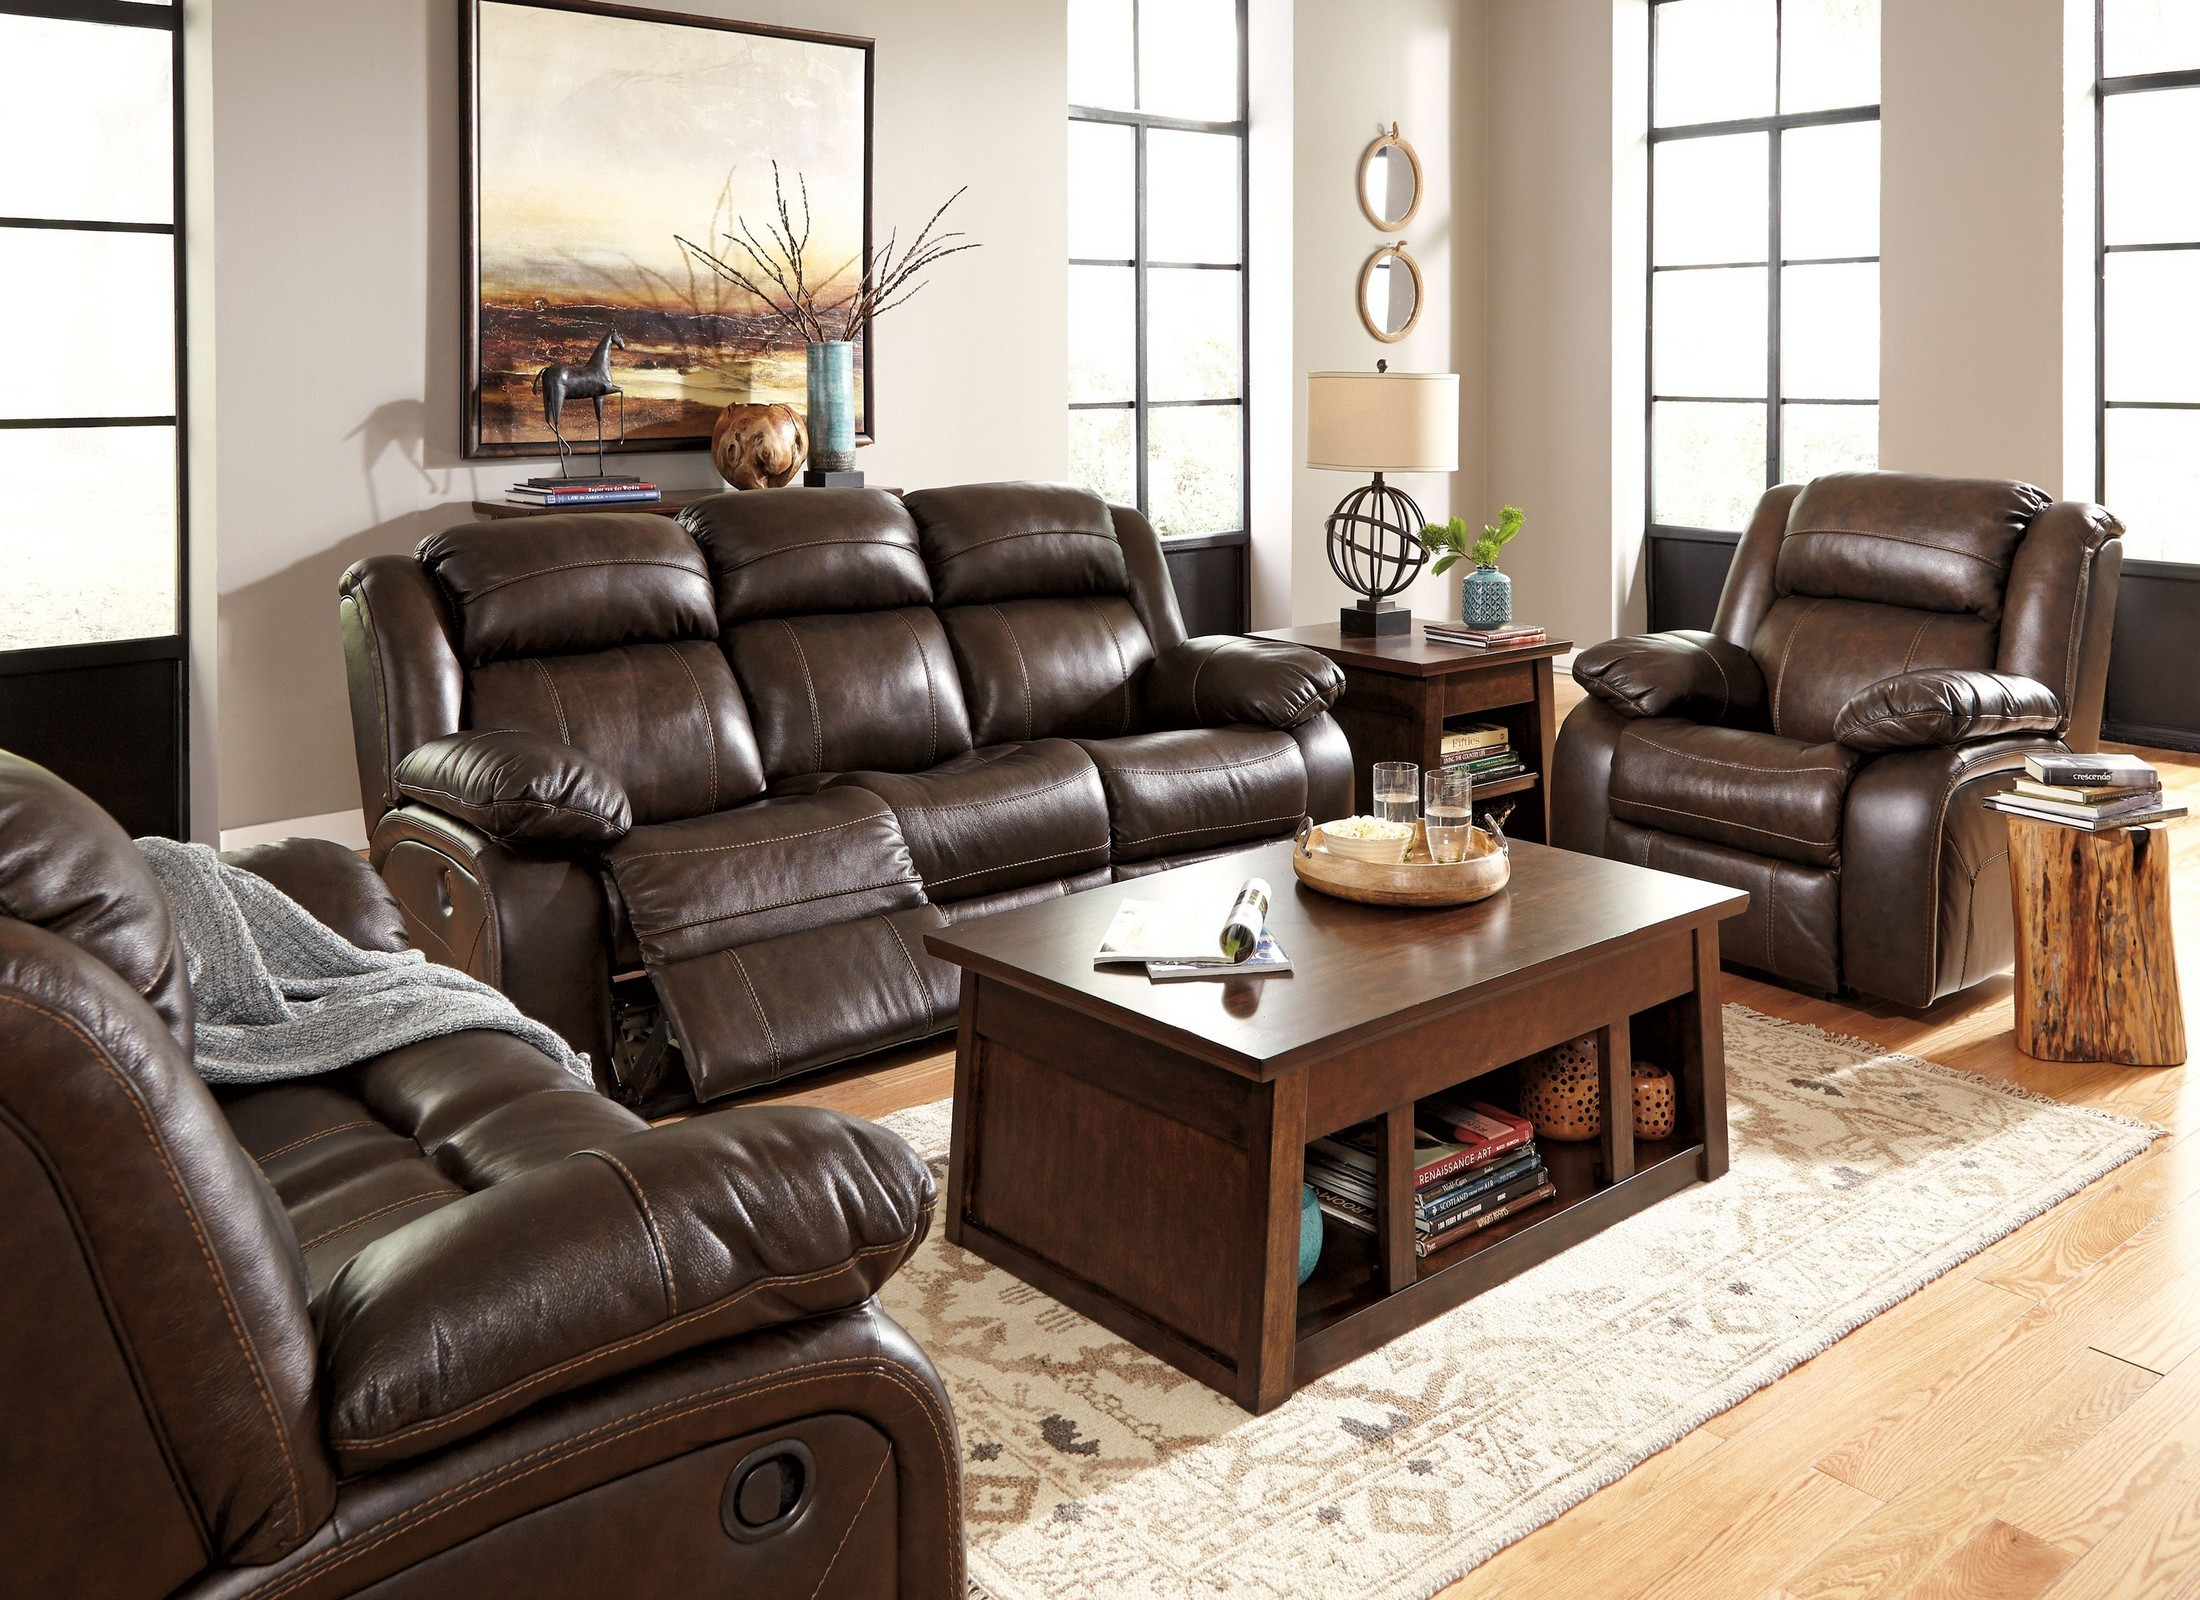 Branton antique reclining living room set from ashley Reclining living room furniture